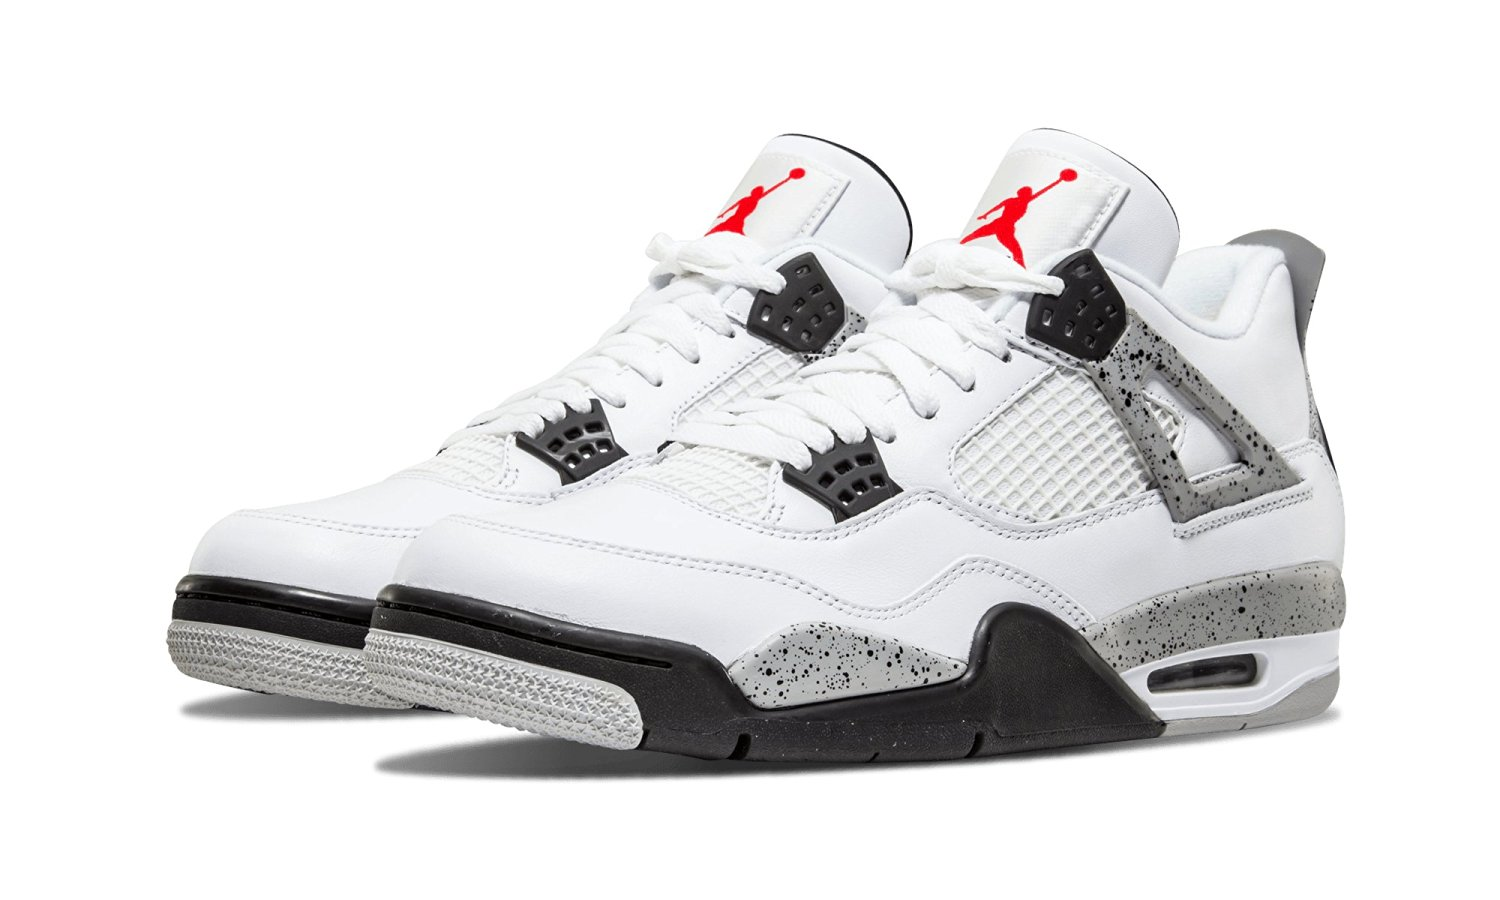 AIR JORDAN 4 RETRO OG 'WHITE CEMENT 2016 RELEASE' - 840606-192